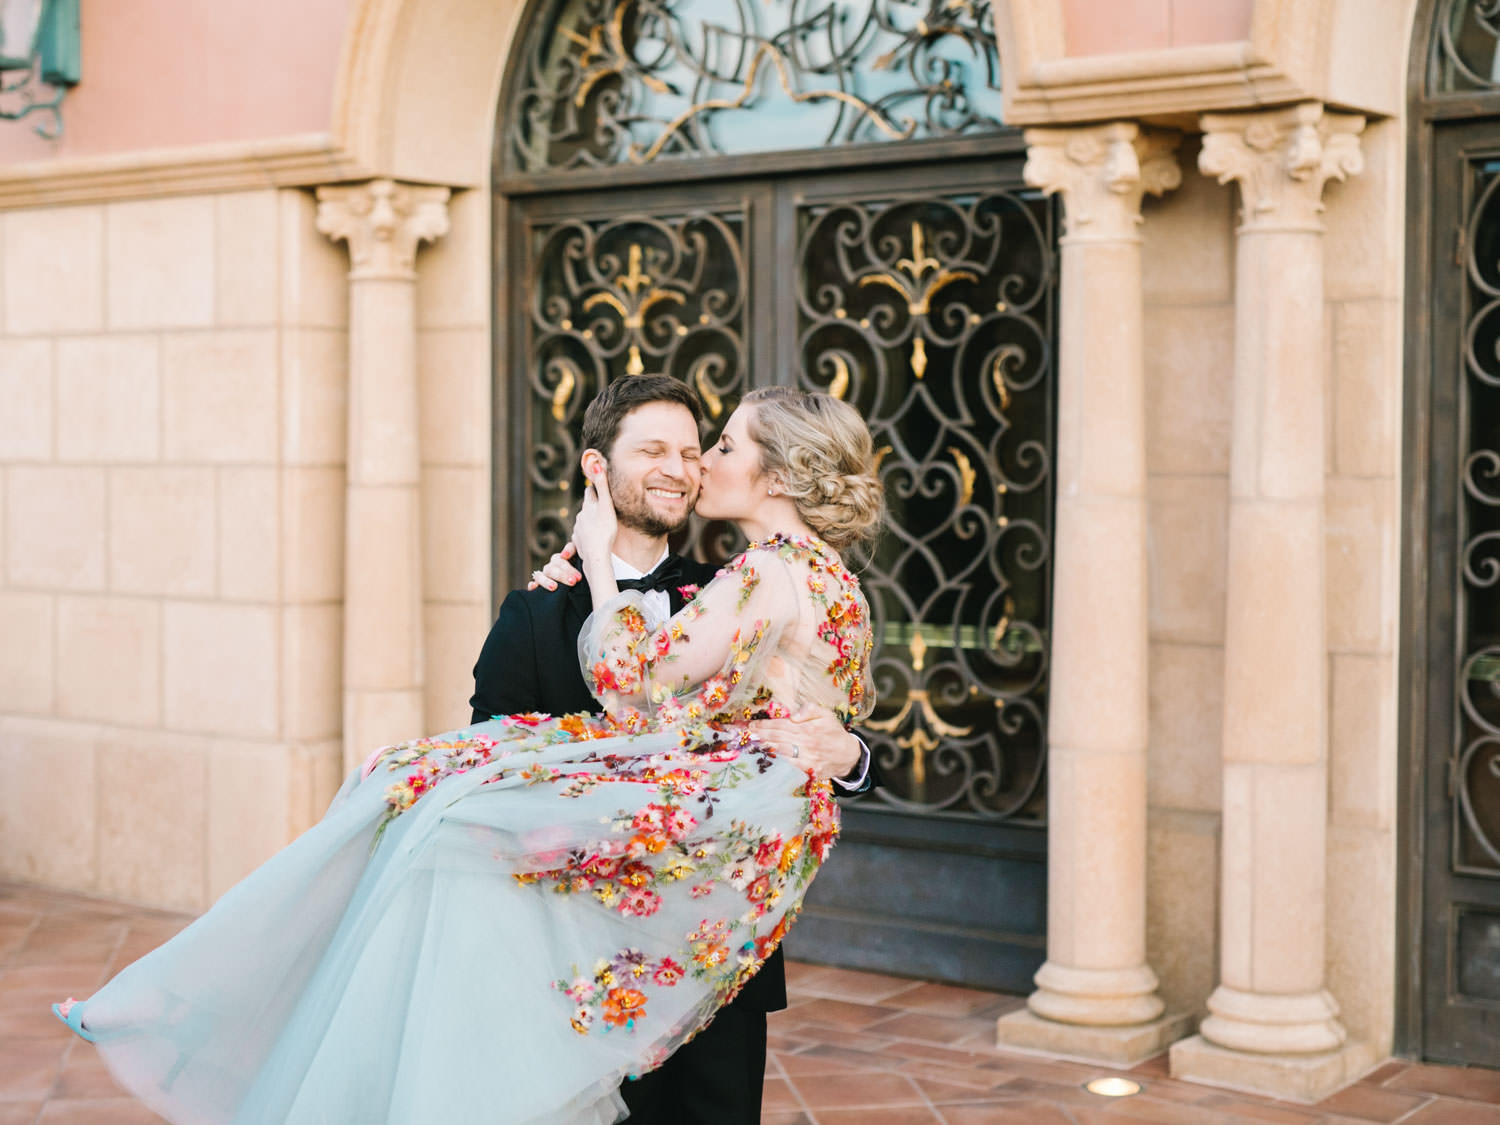 Bride wearing colorful Marchesa wedding gown with blue, pink, yellow, green, and orange floral appliques. Groom picking up bride.